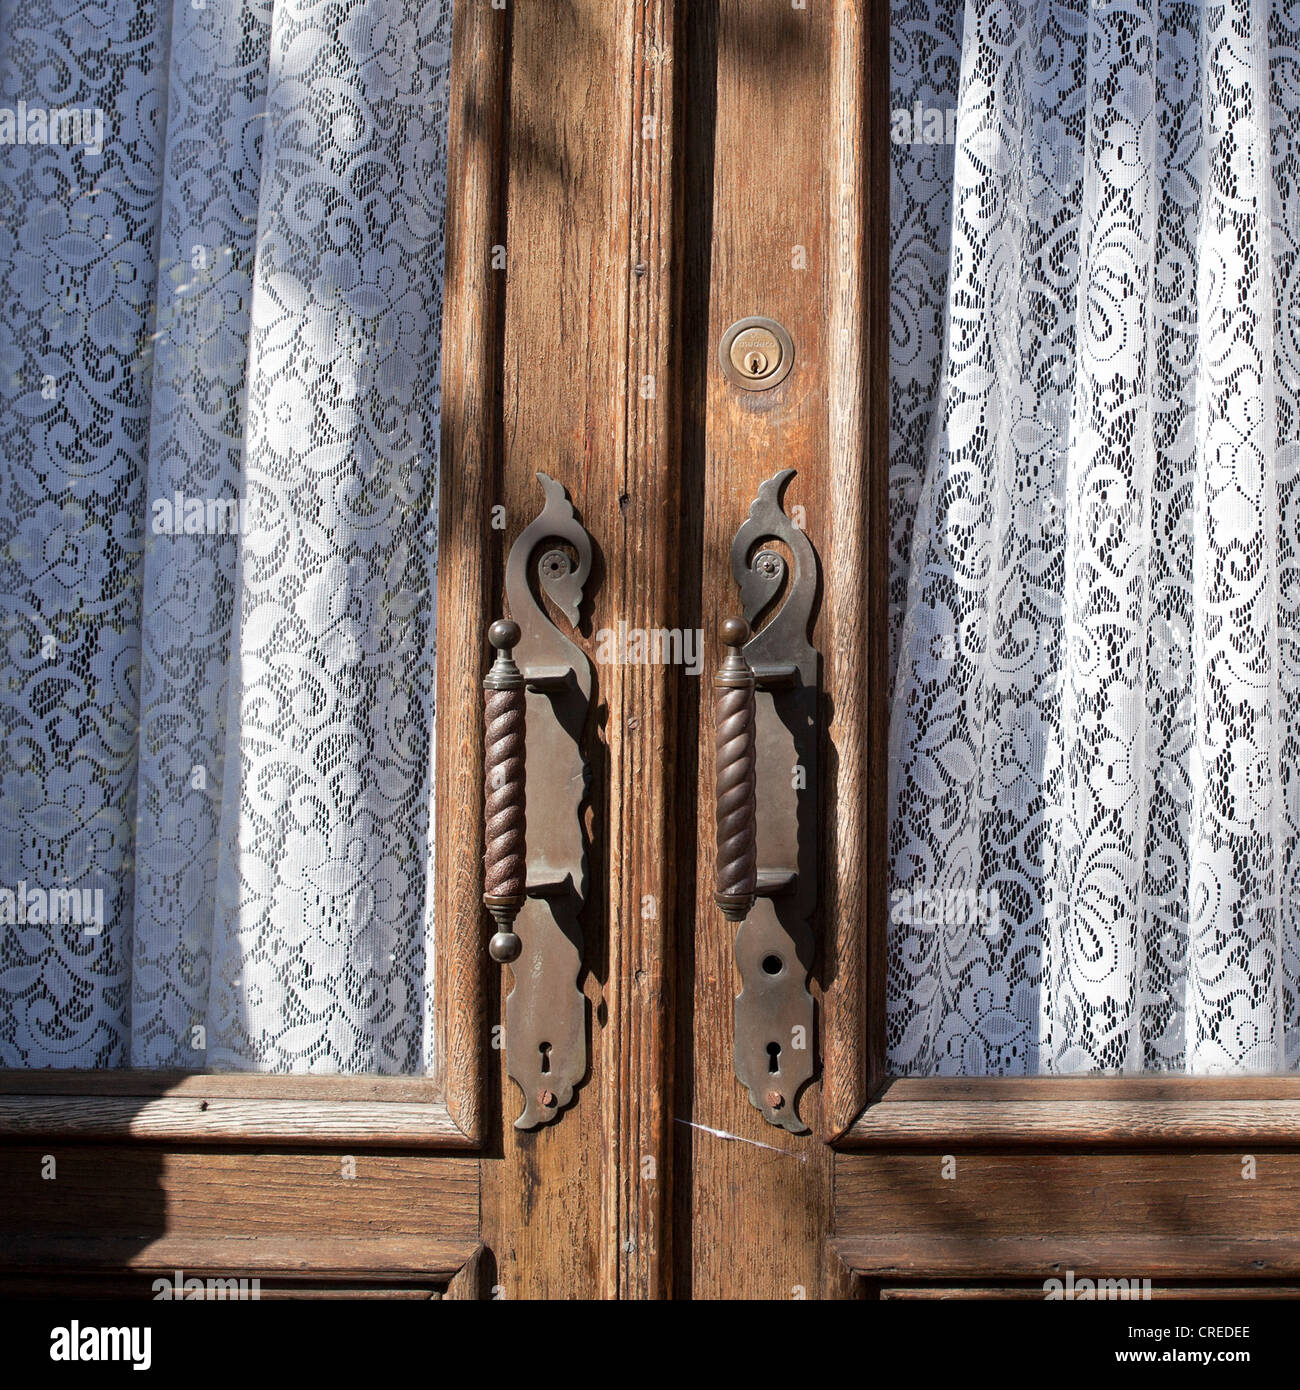 Lace curtains accent a wooden door in the Park Slope neighborhood of Brooklyn, New York. - Stock Image